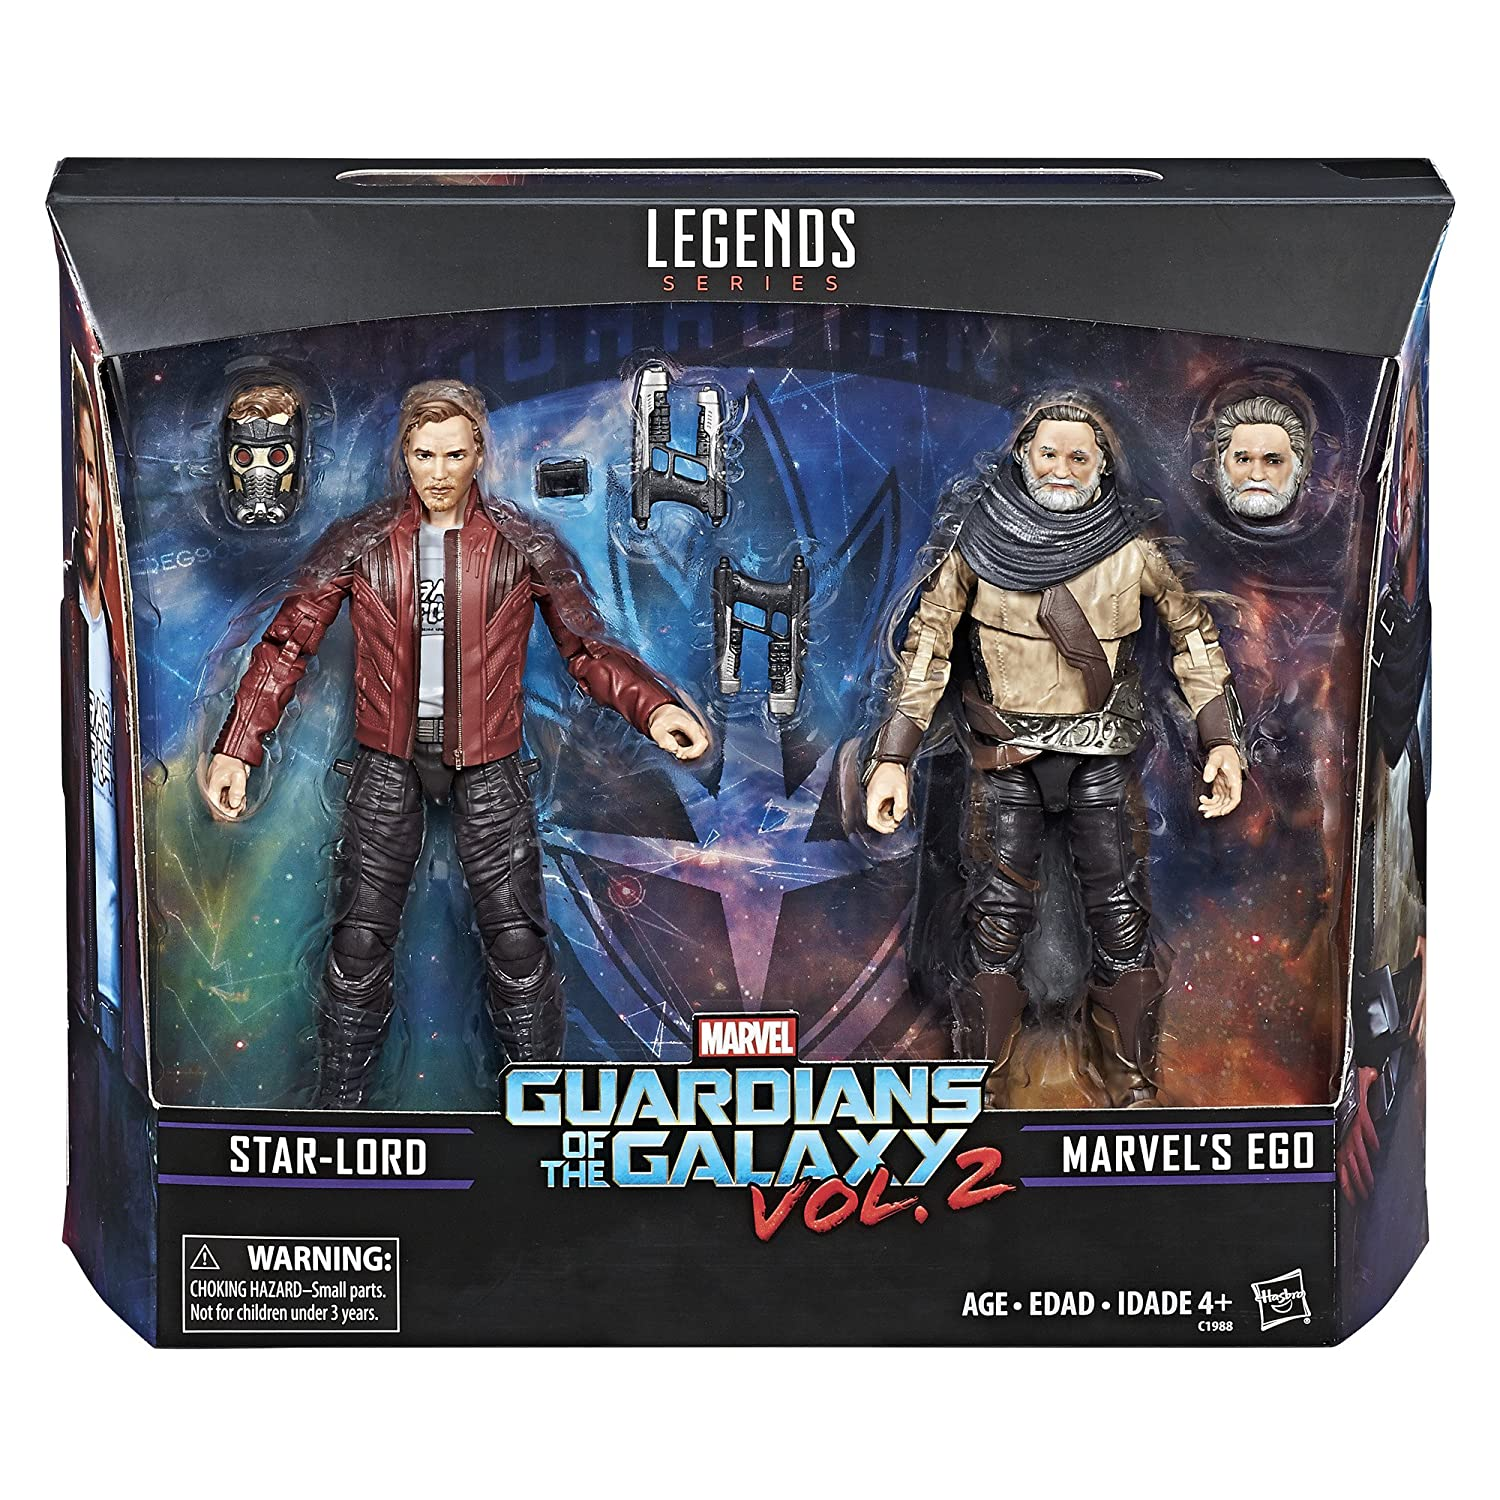 Marvel Legends Guardians of the Galaxy Vol. 2 marvel' S eGo & star-lord 2-pack